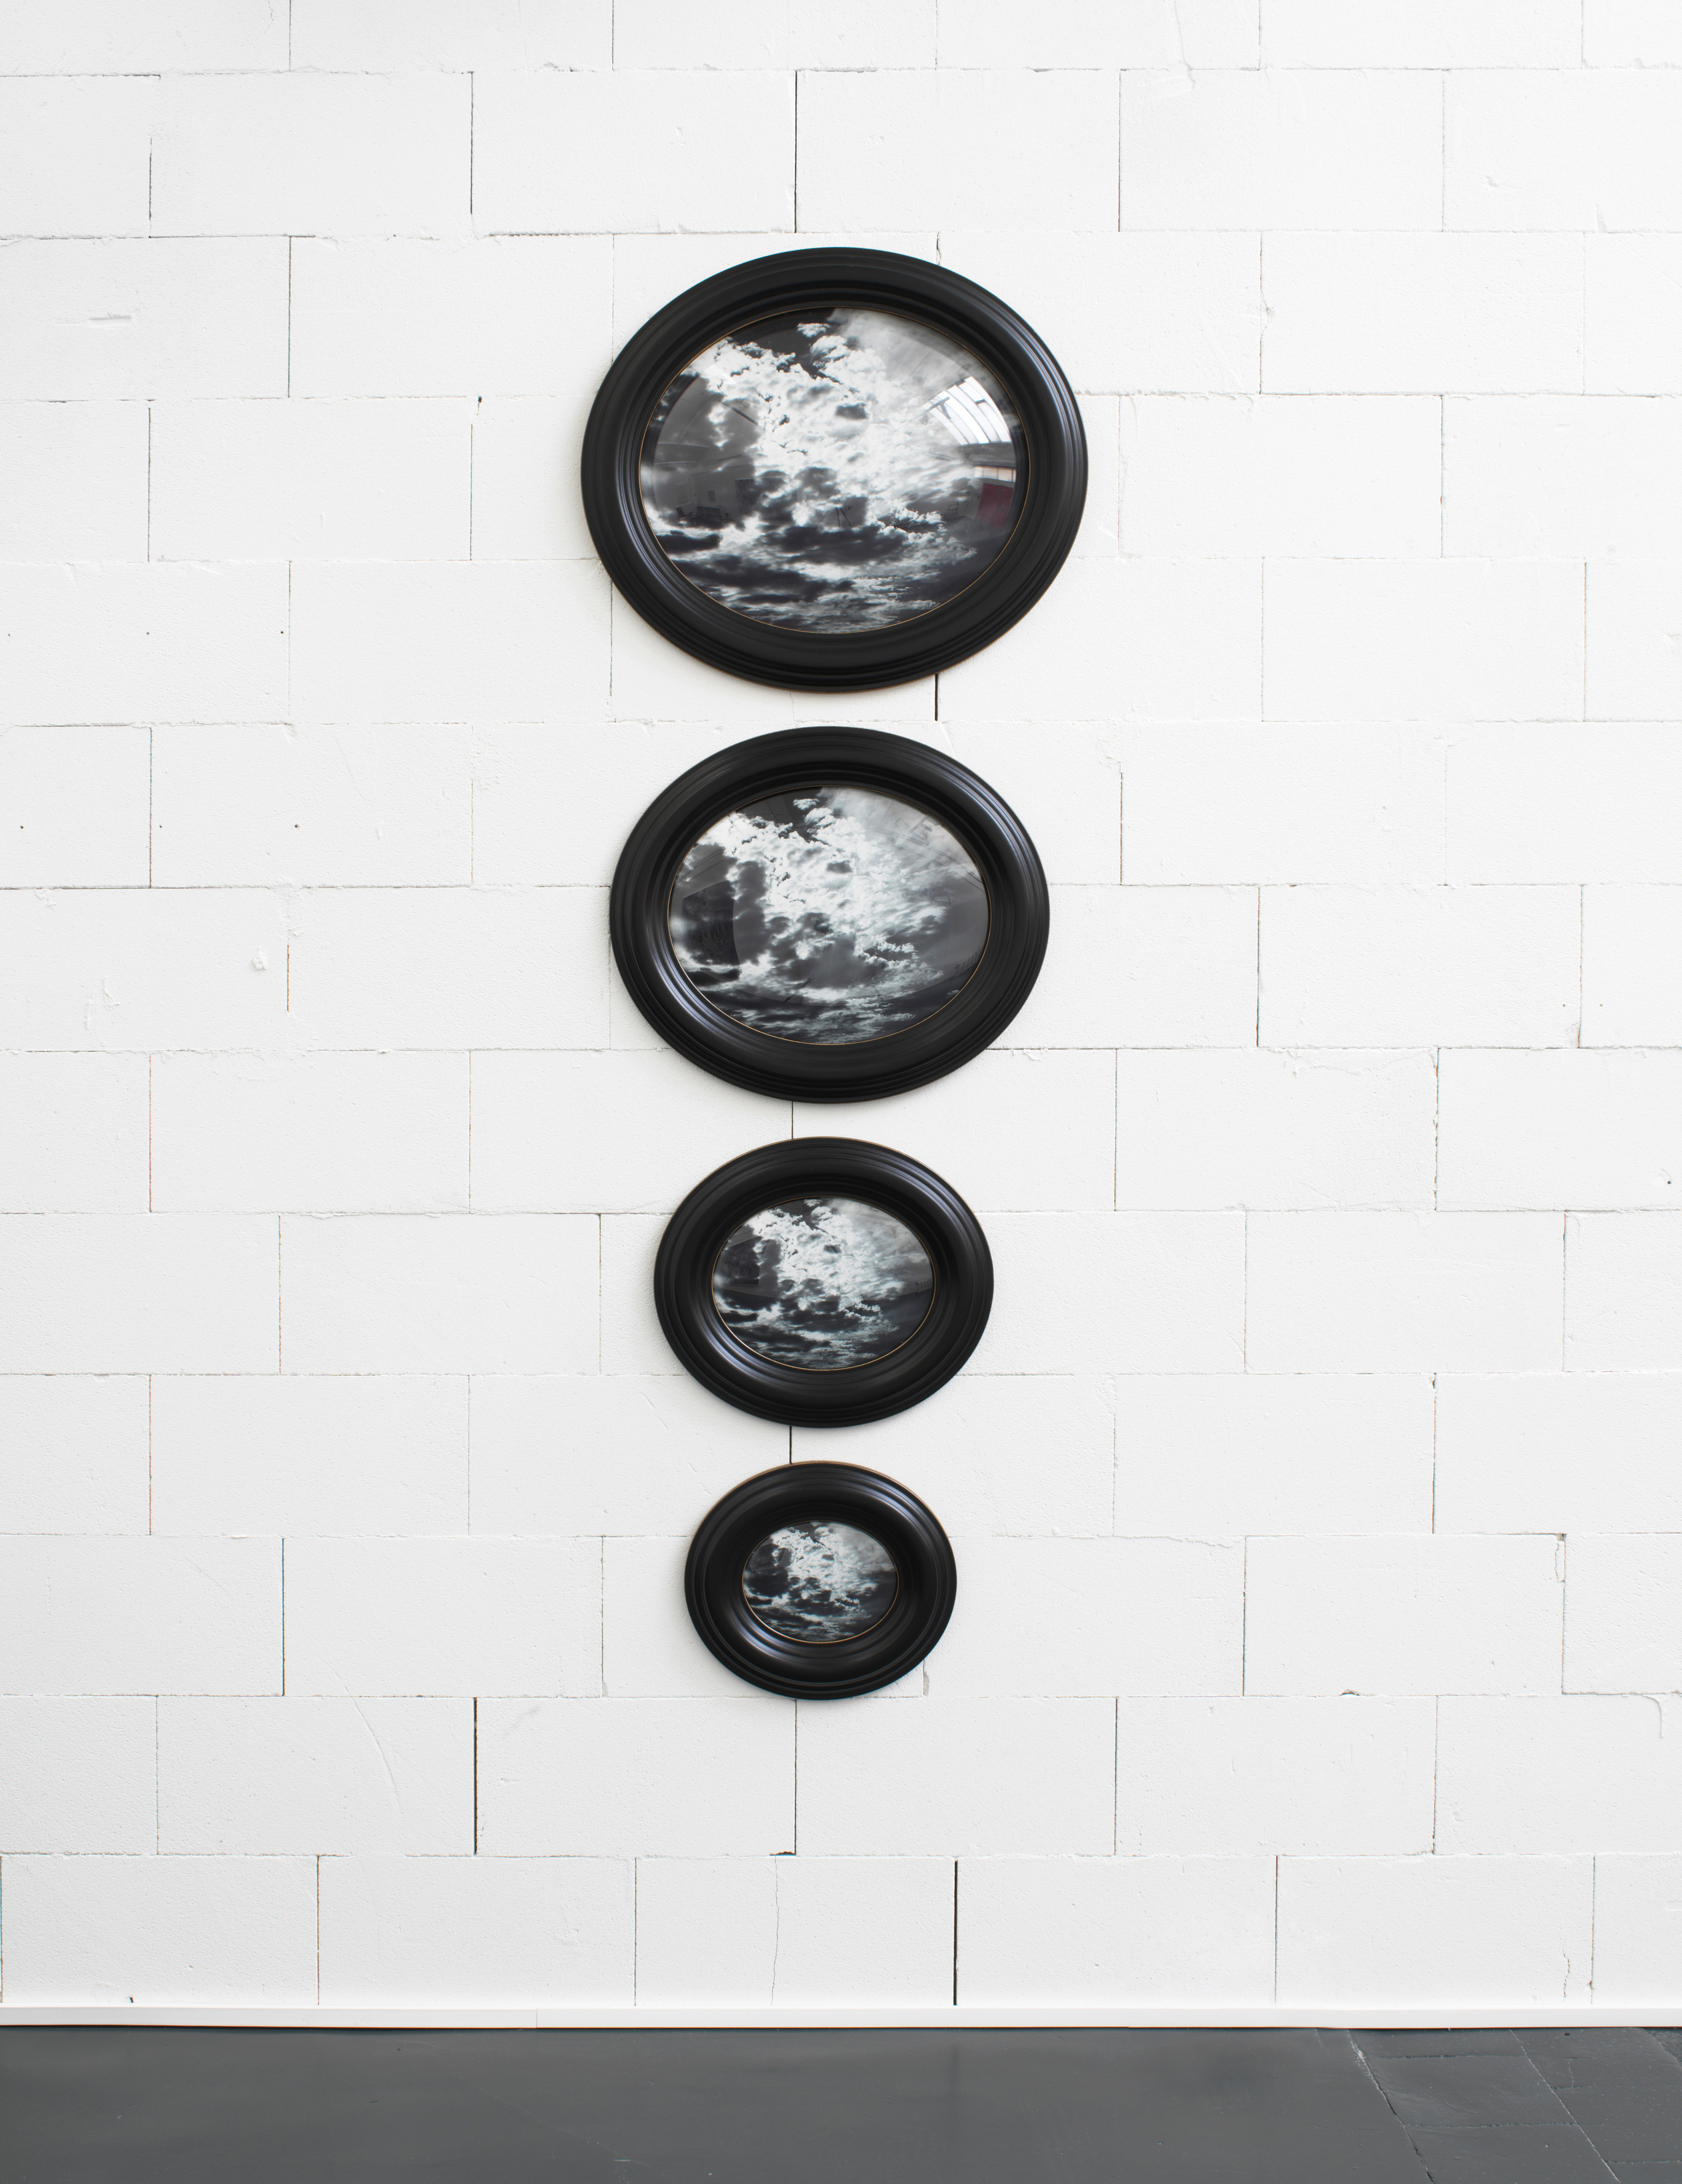 Galerie Barbara Thumm \ Available Works